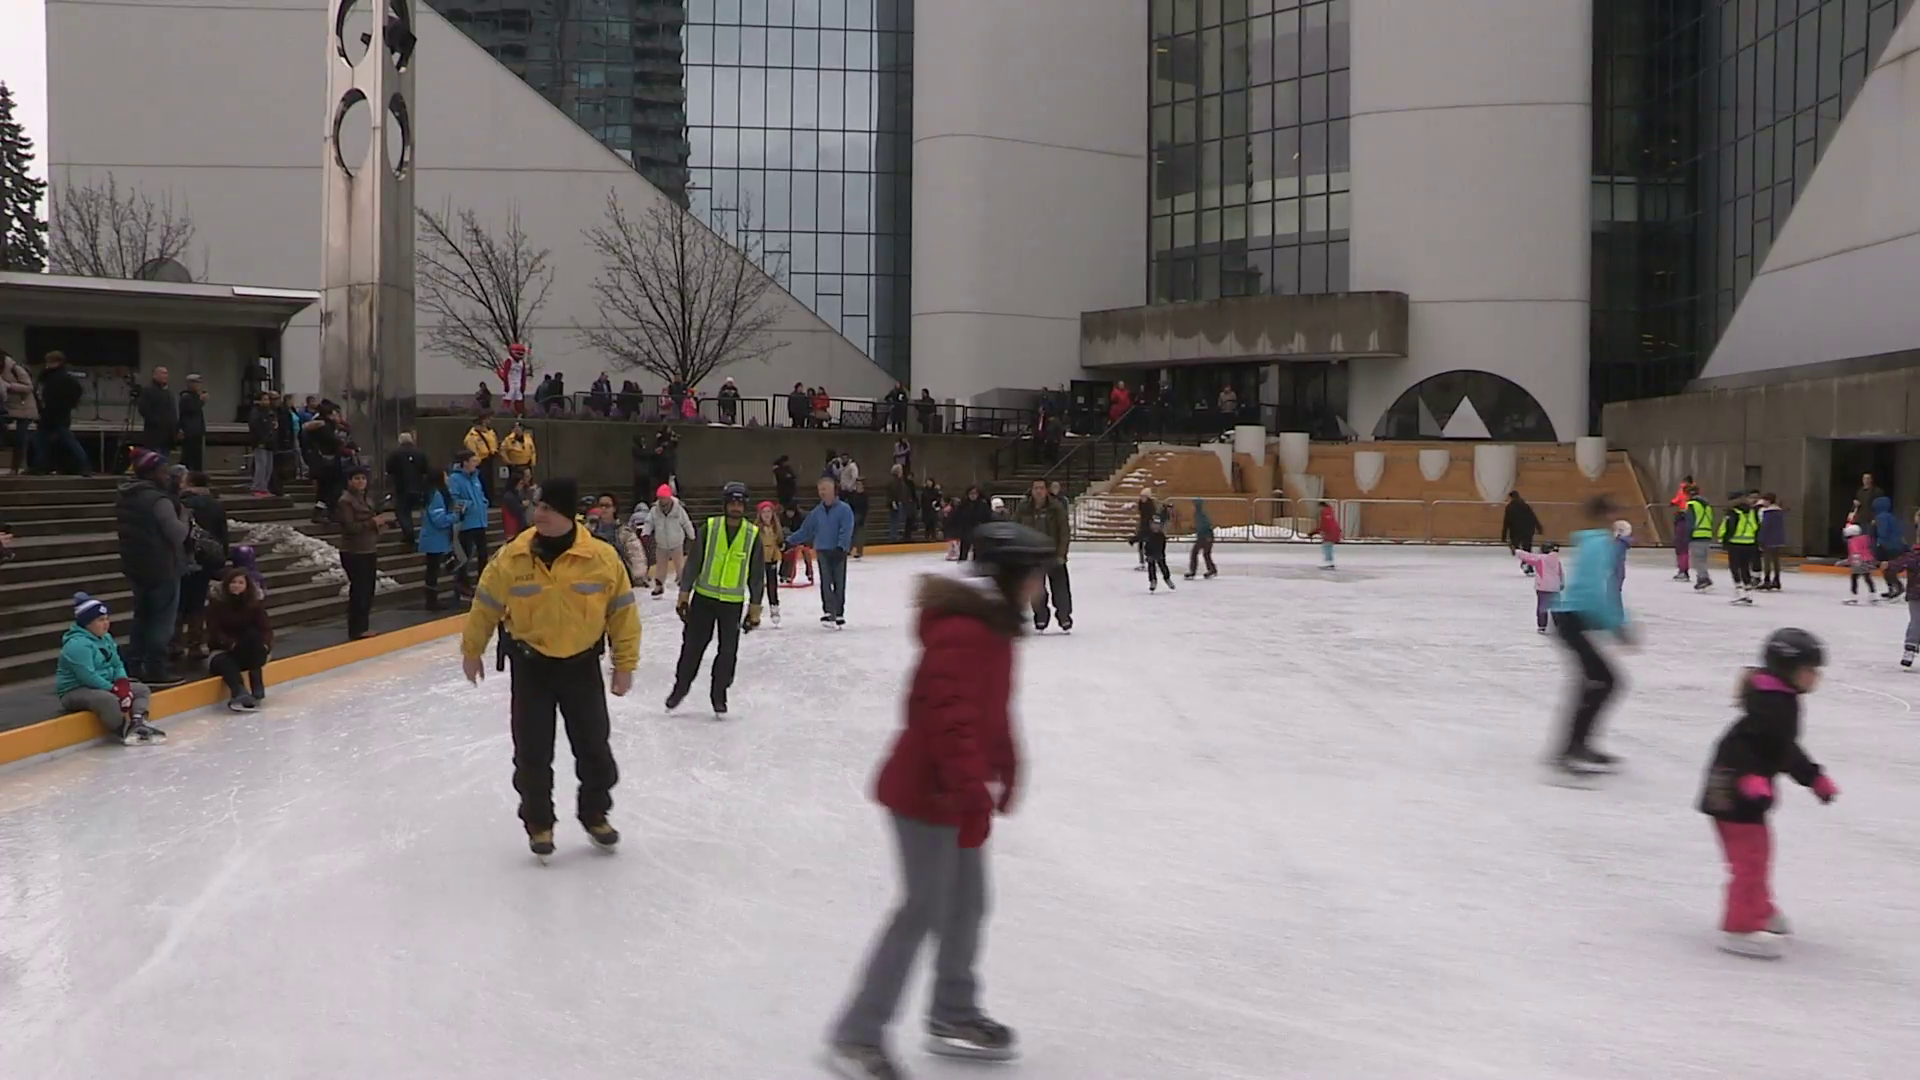 People skating on outdoor family ice rink in Toronto on cold winter day  Stock Video Footage - VideoBlocks - People In Cold Winter PNG